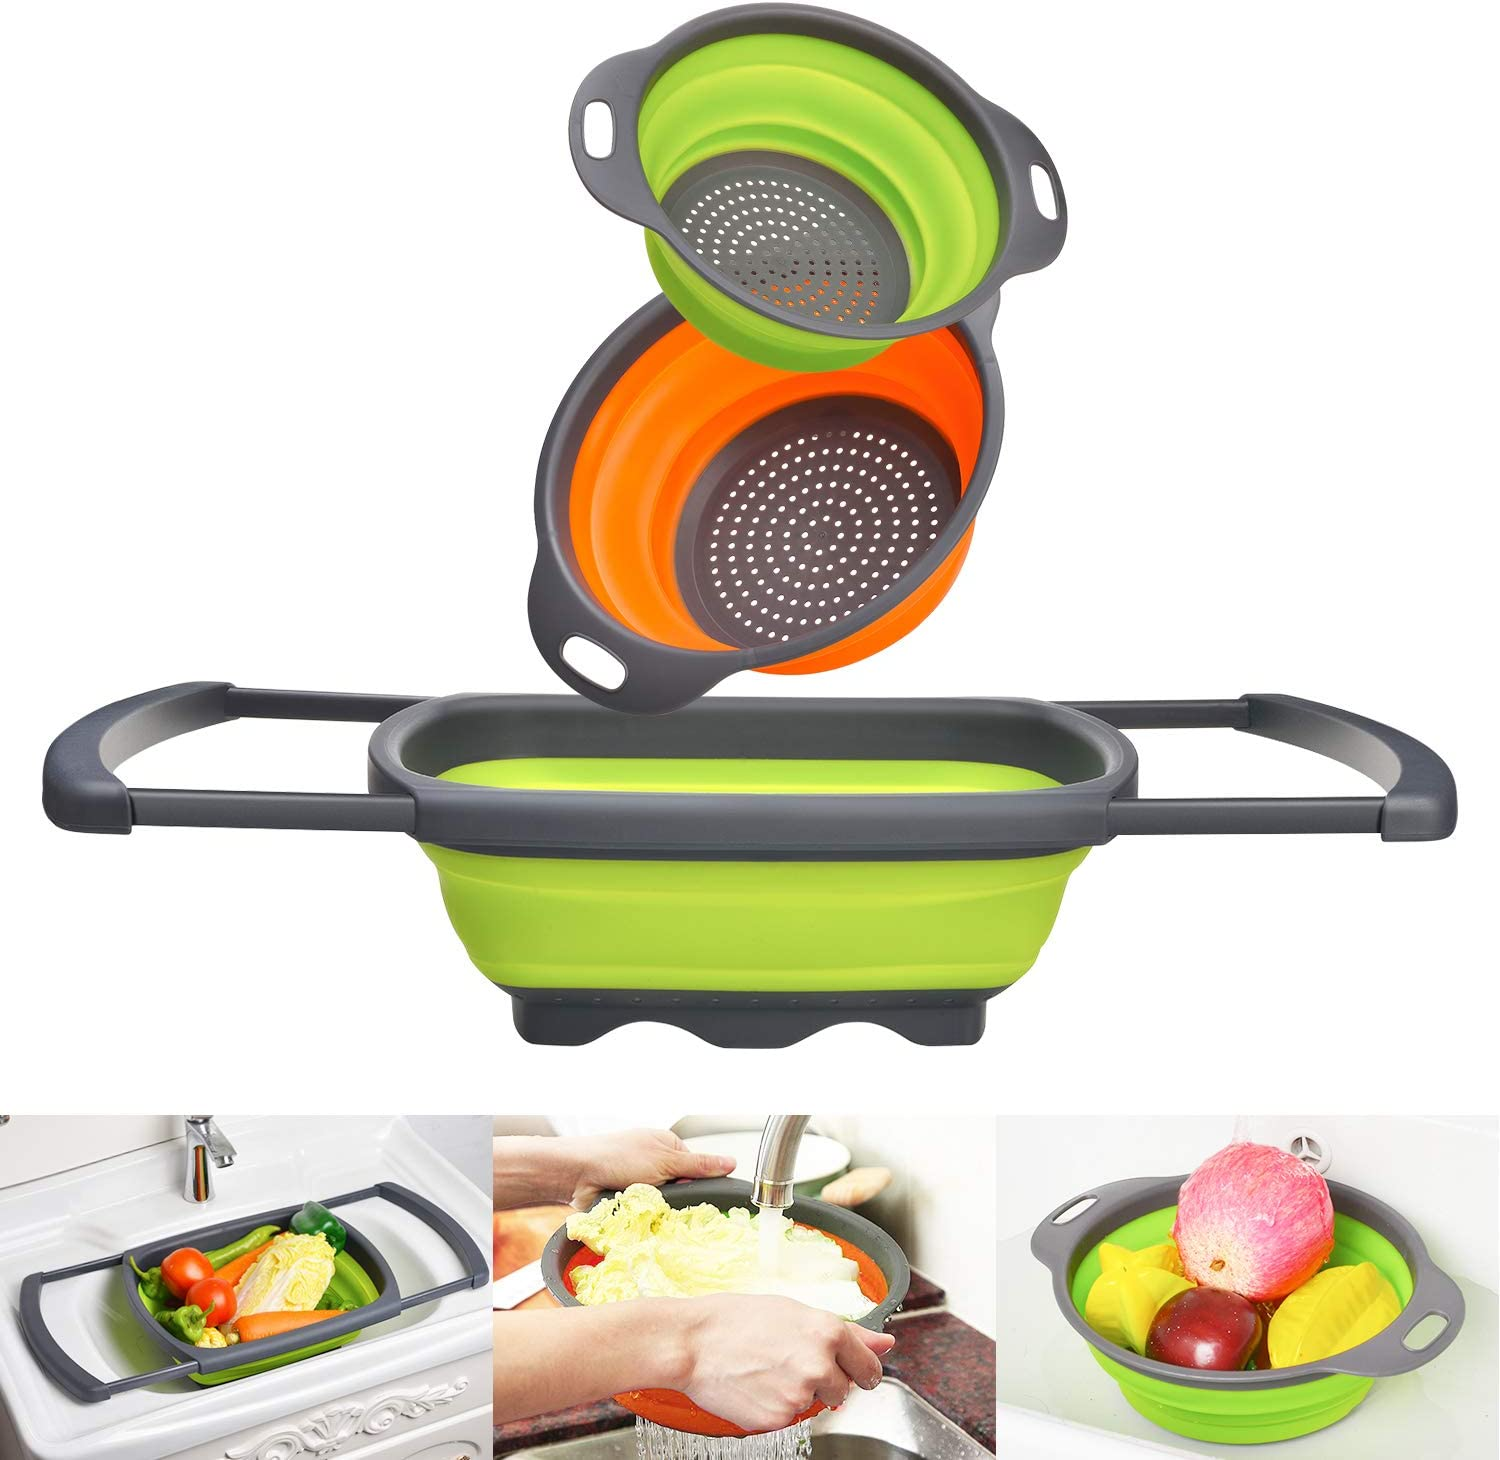 Goodking 3 Pack Collapsible Colander Set, Over the Sink Food Colanders Strainers with Extendable Handles, 6-Quart& 4-Quart& 2-Quart, Space-Saving Kitchen Foldable Strainer for Draining Vegetable Fruit